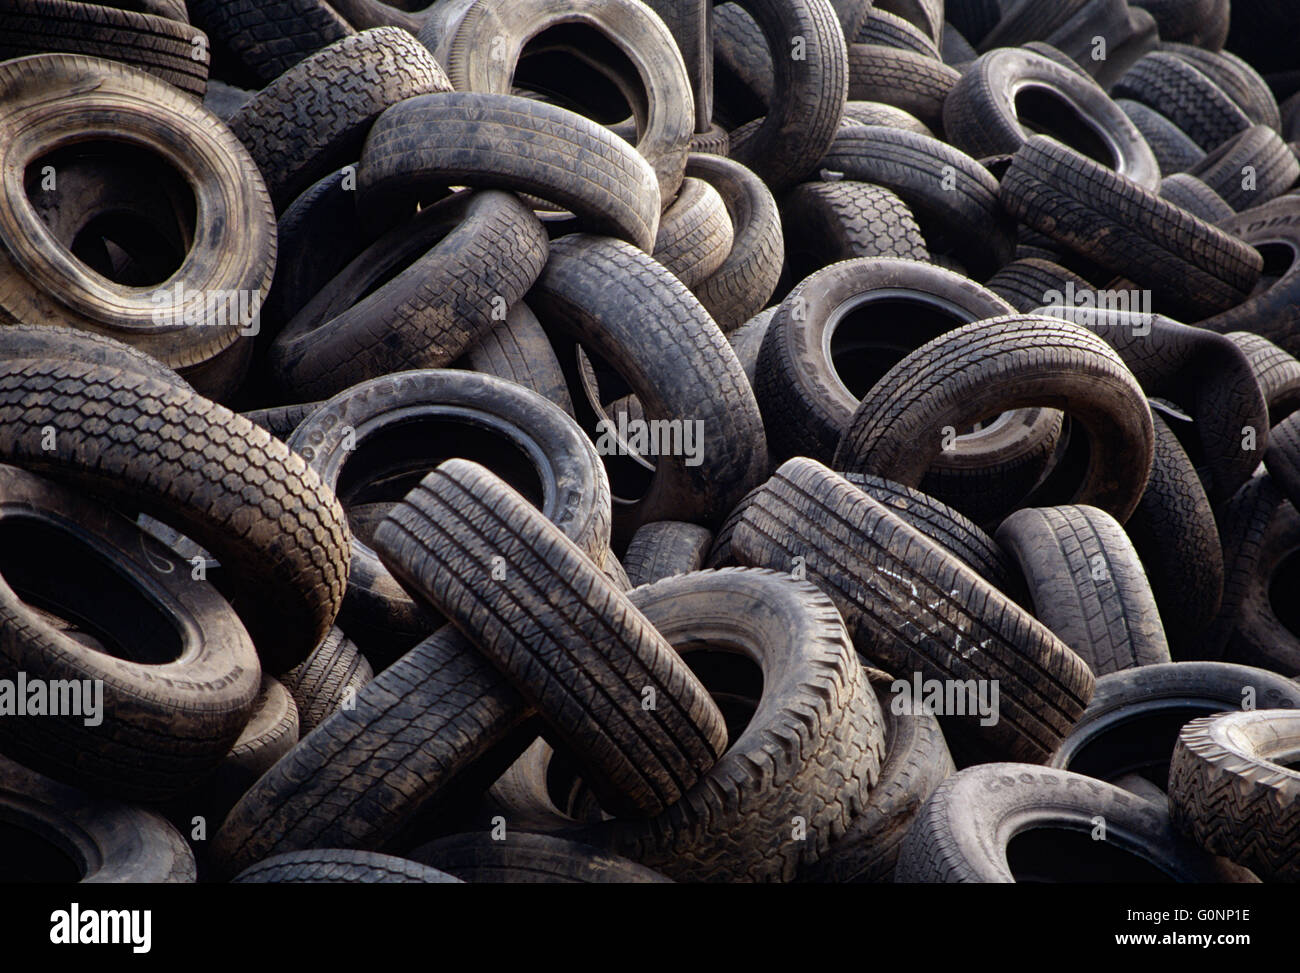 Landfill full of old automobile tires; upstate Pennsylvania; USA - Stock Image